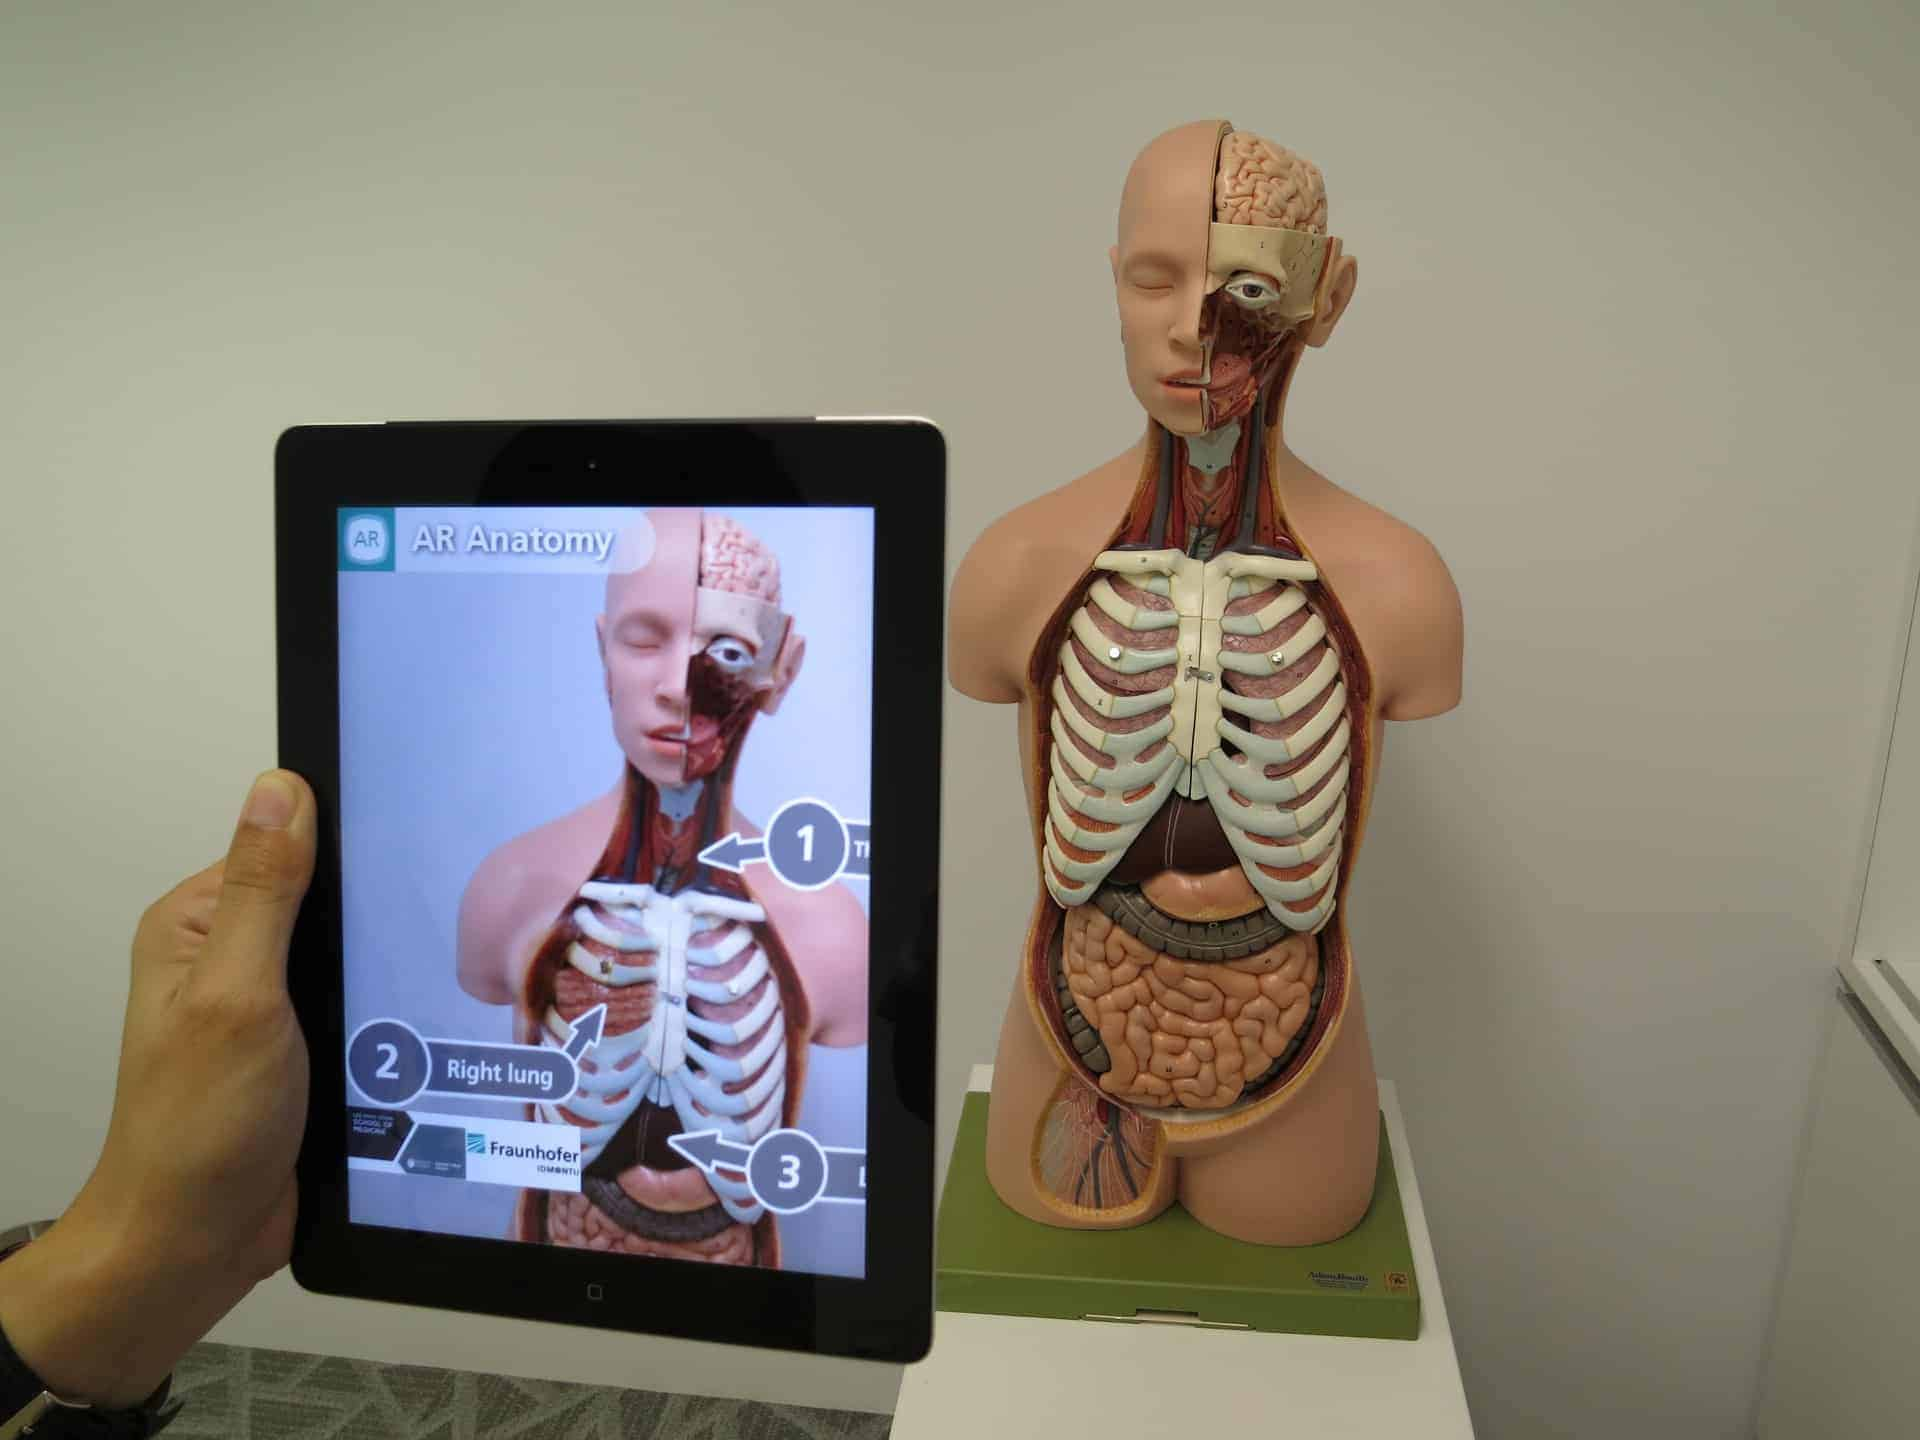 augmented-reality-1957411_1920 9 Recent Medical Innovations Disrupting The Healthcare Industry